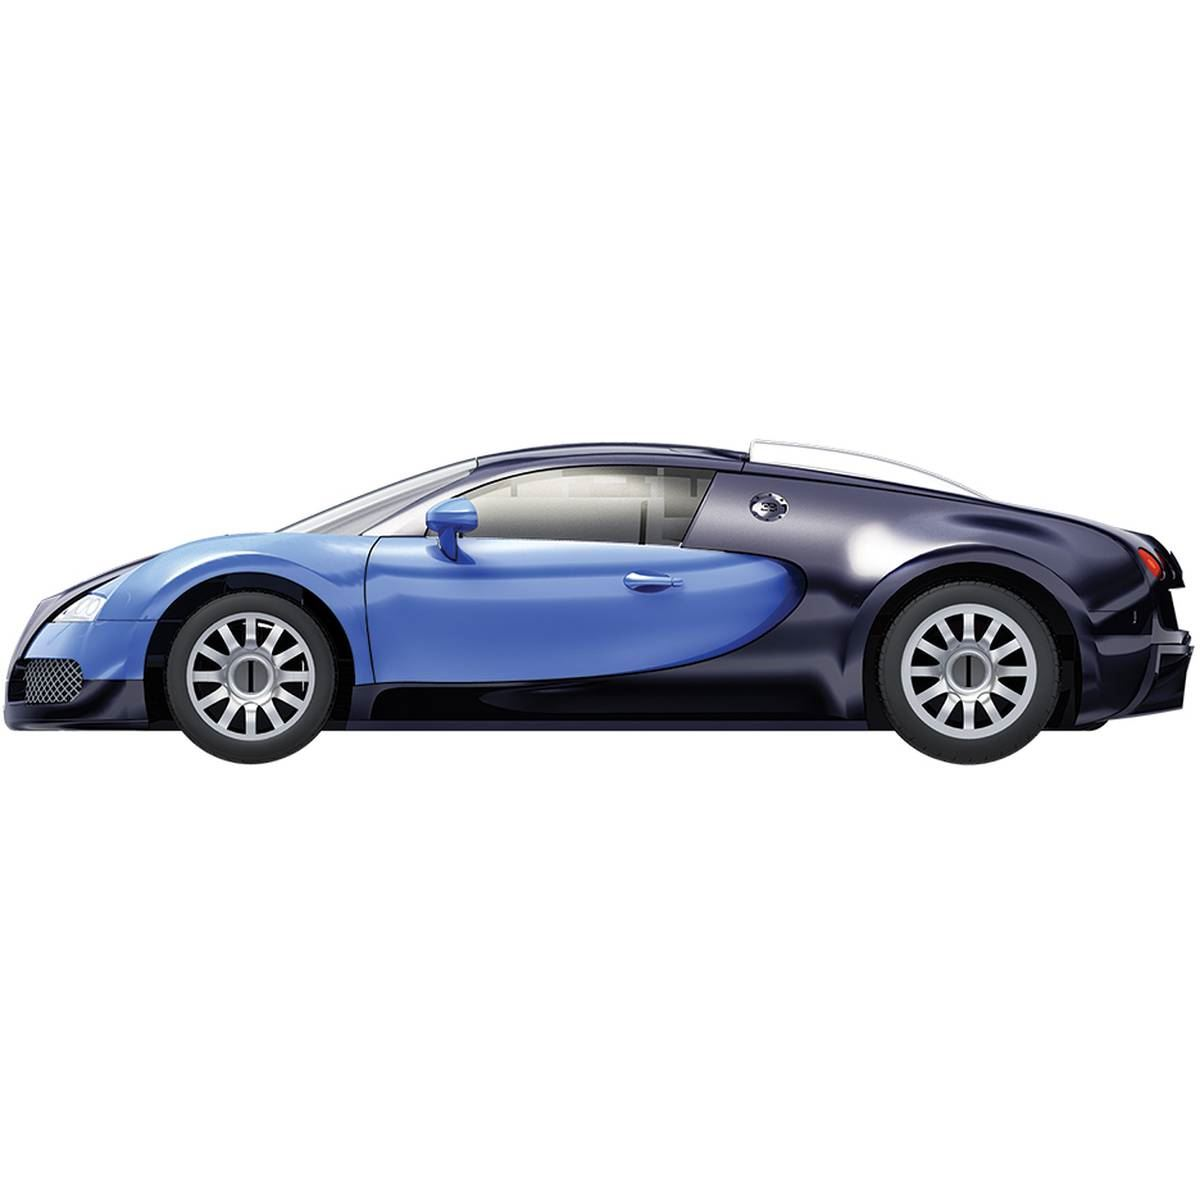 airfix quick build bugatti veyron model kit car. Black Bedroom Furniture Sets. Home Design Ideas